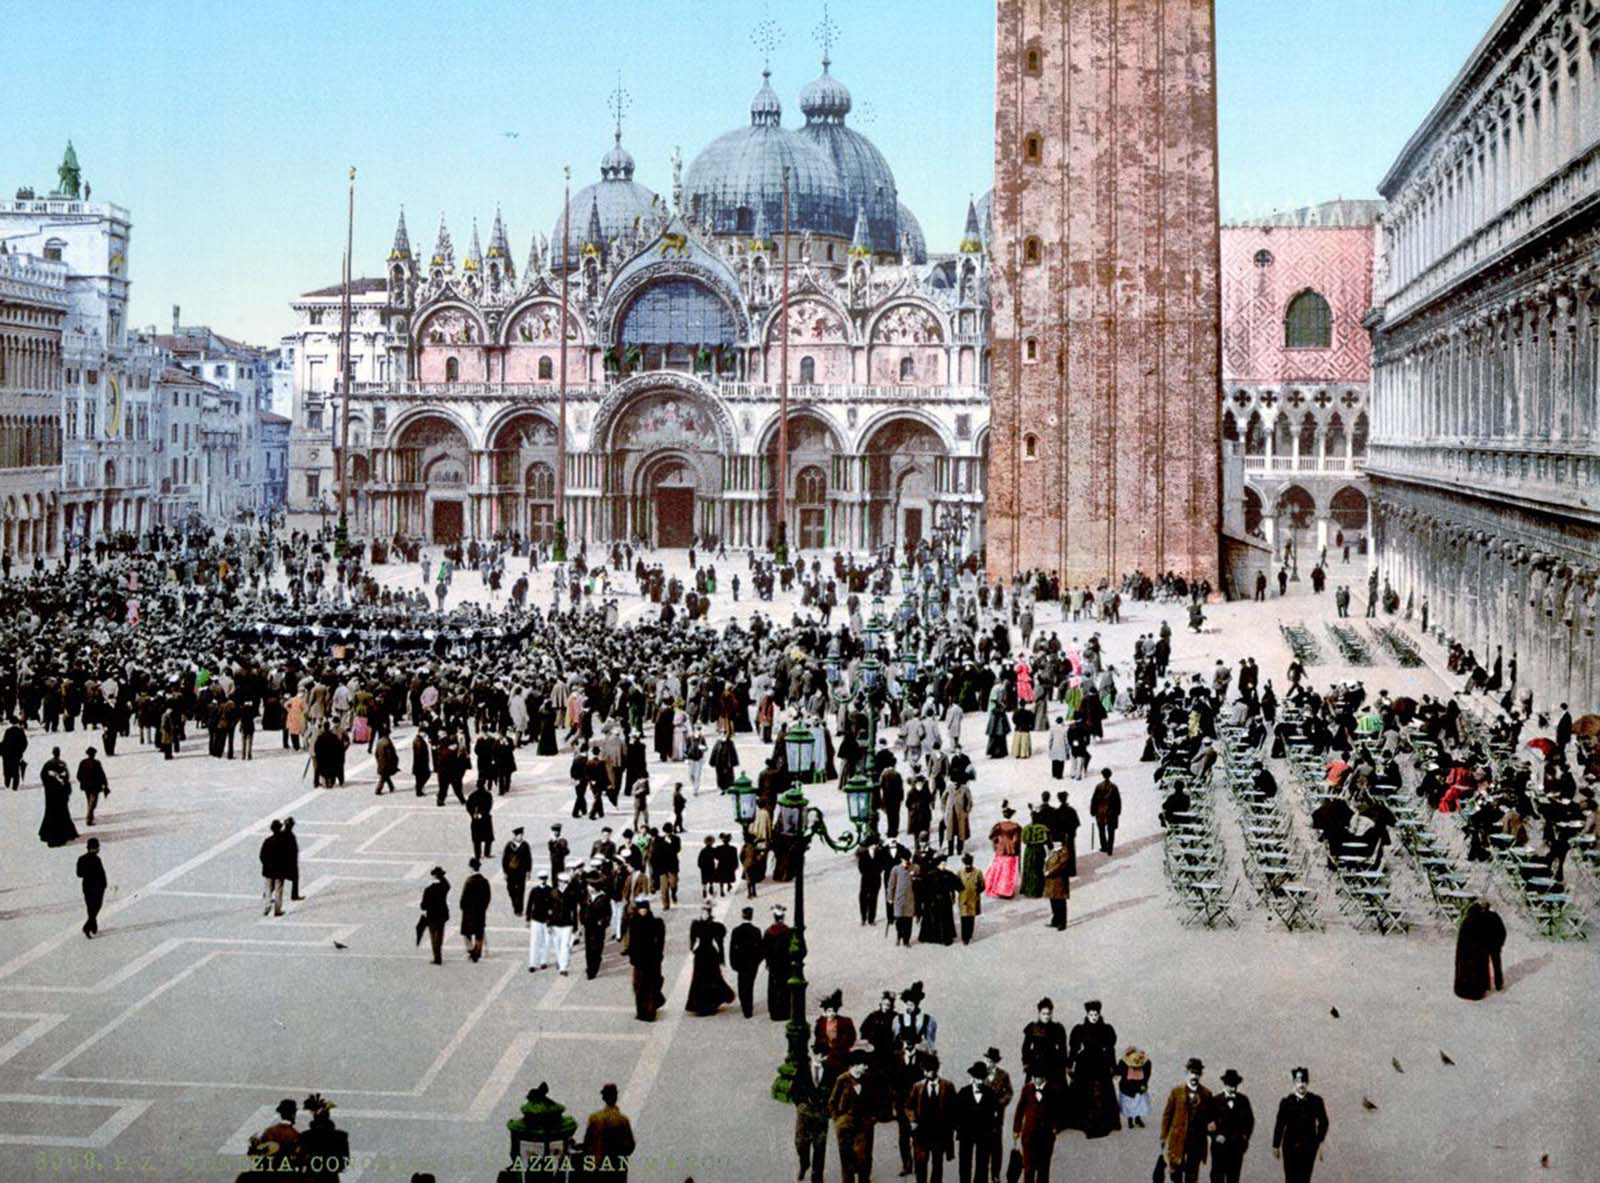 A concert in St. Mark's Square.